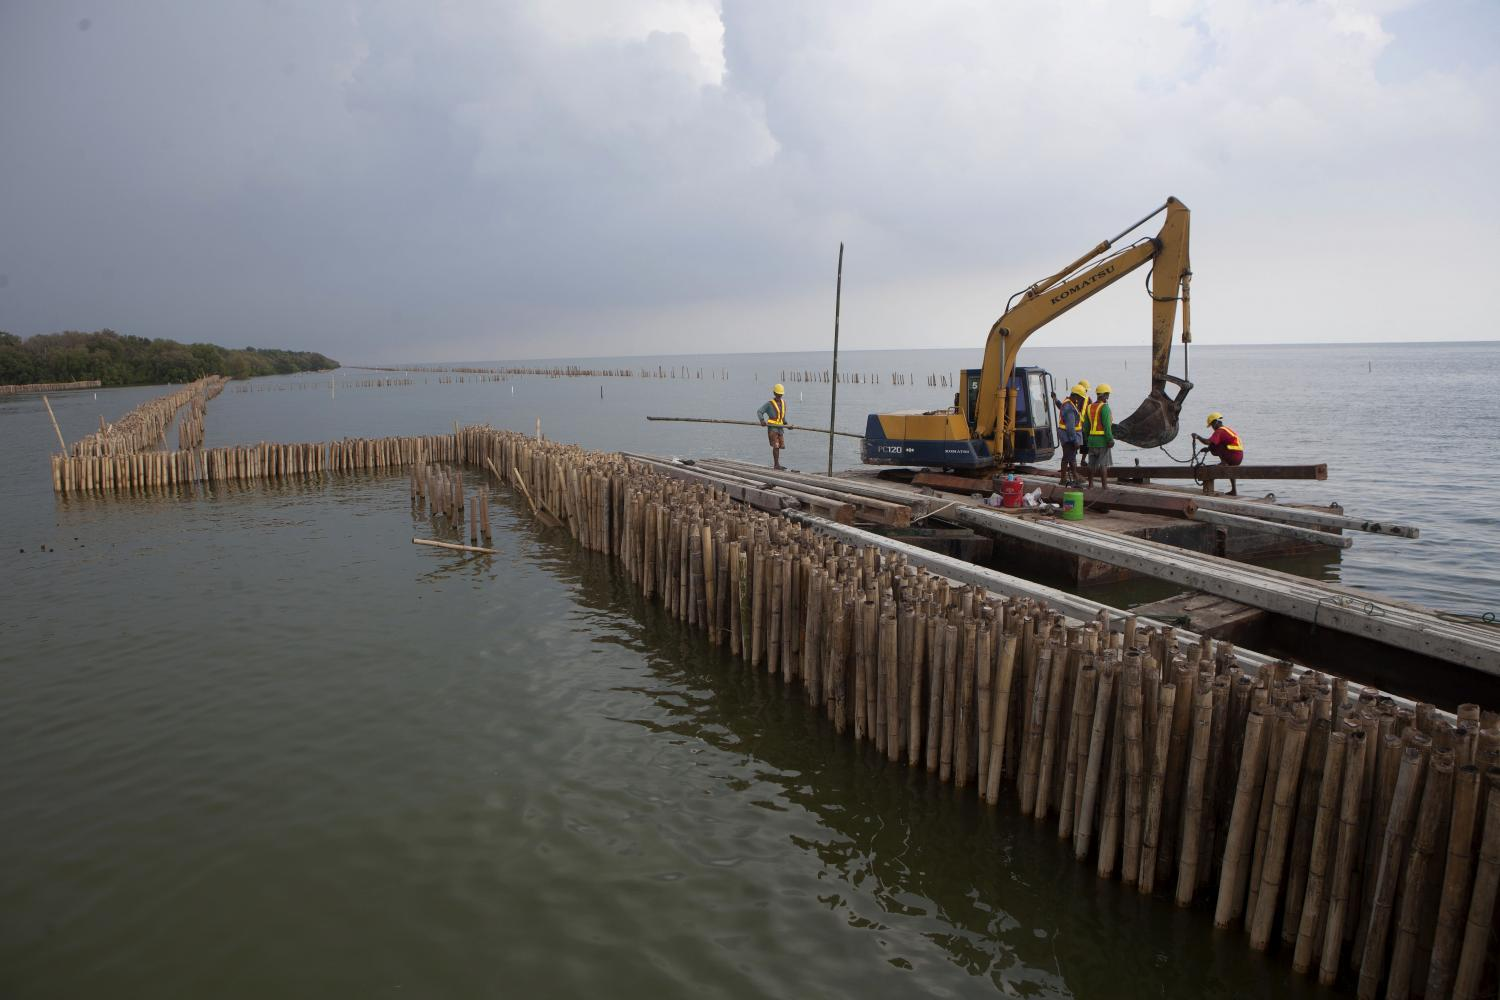 Heavy machinery is deployed to sink concrete poles along the shoreline off Bang Khunthian district of Bangkok to prevent coastal erosion. About 400 electricity poles were taken from areas in Bangkok where power lines had been laid underground. They were placed vertically to form a buffer zone against the waves. (Photo by Pawat Laopaisarntaksin)